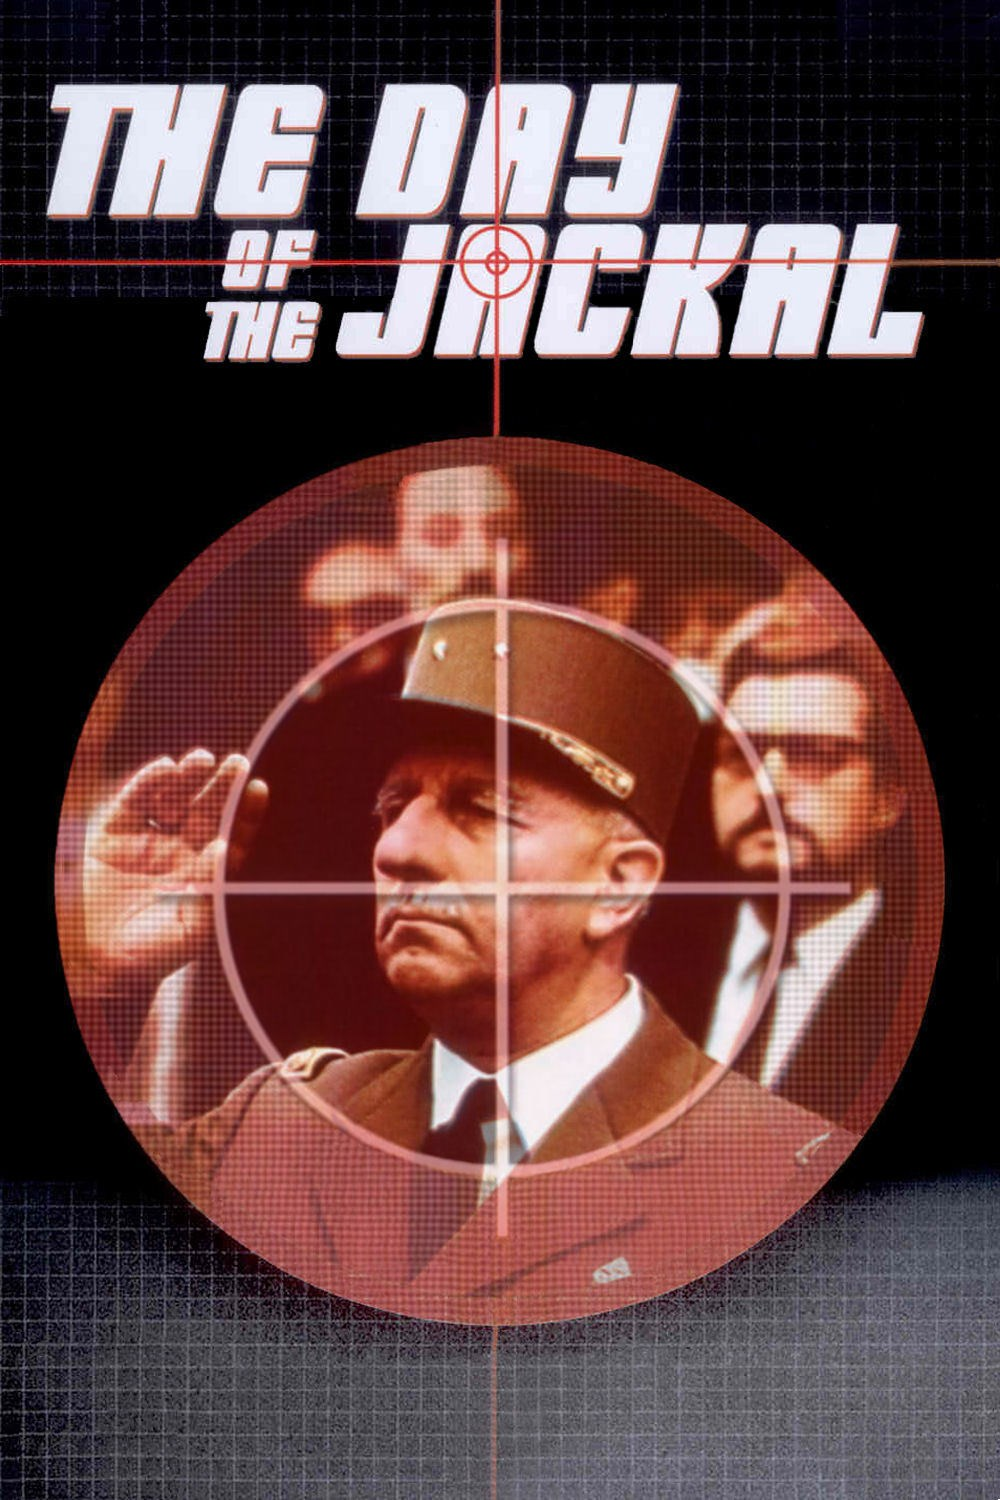 https://i.jeded.com/i/the-day-of-the-jackal.14498.jpg